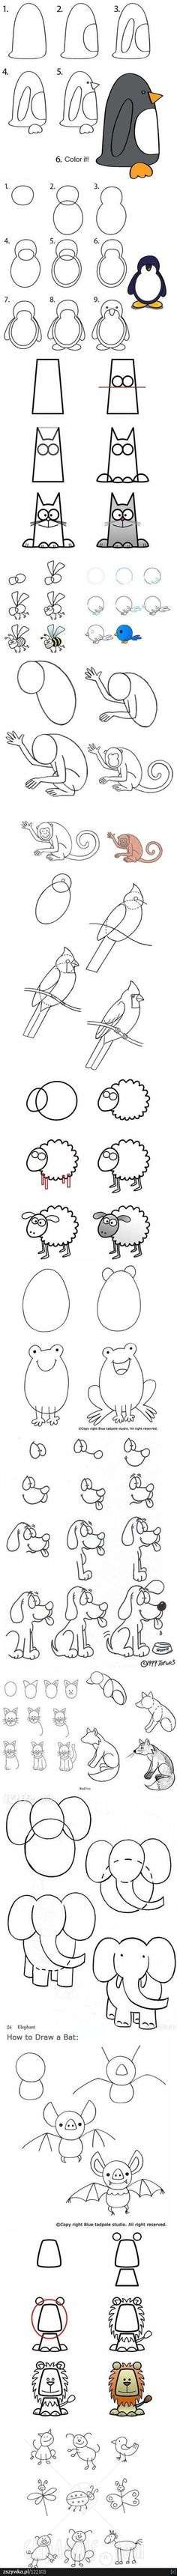 How to draw cute little animals